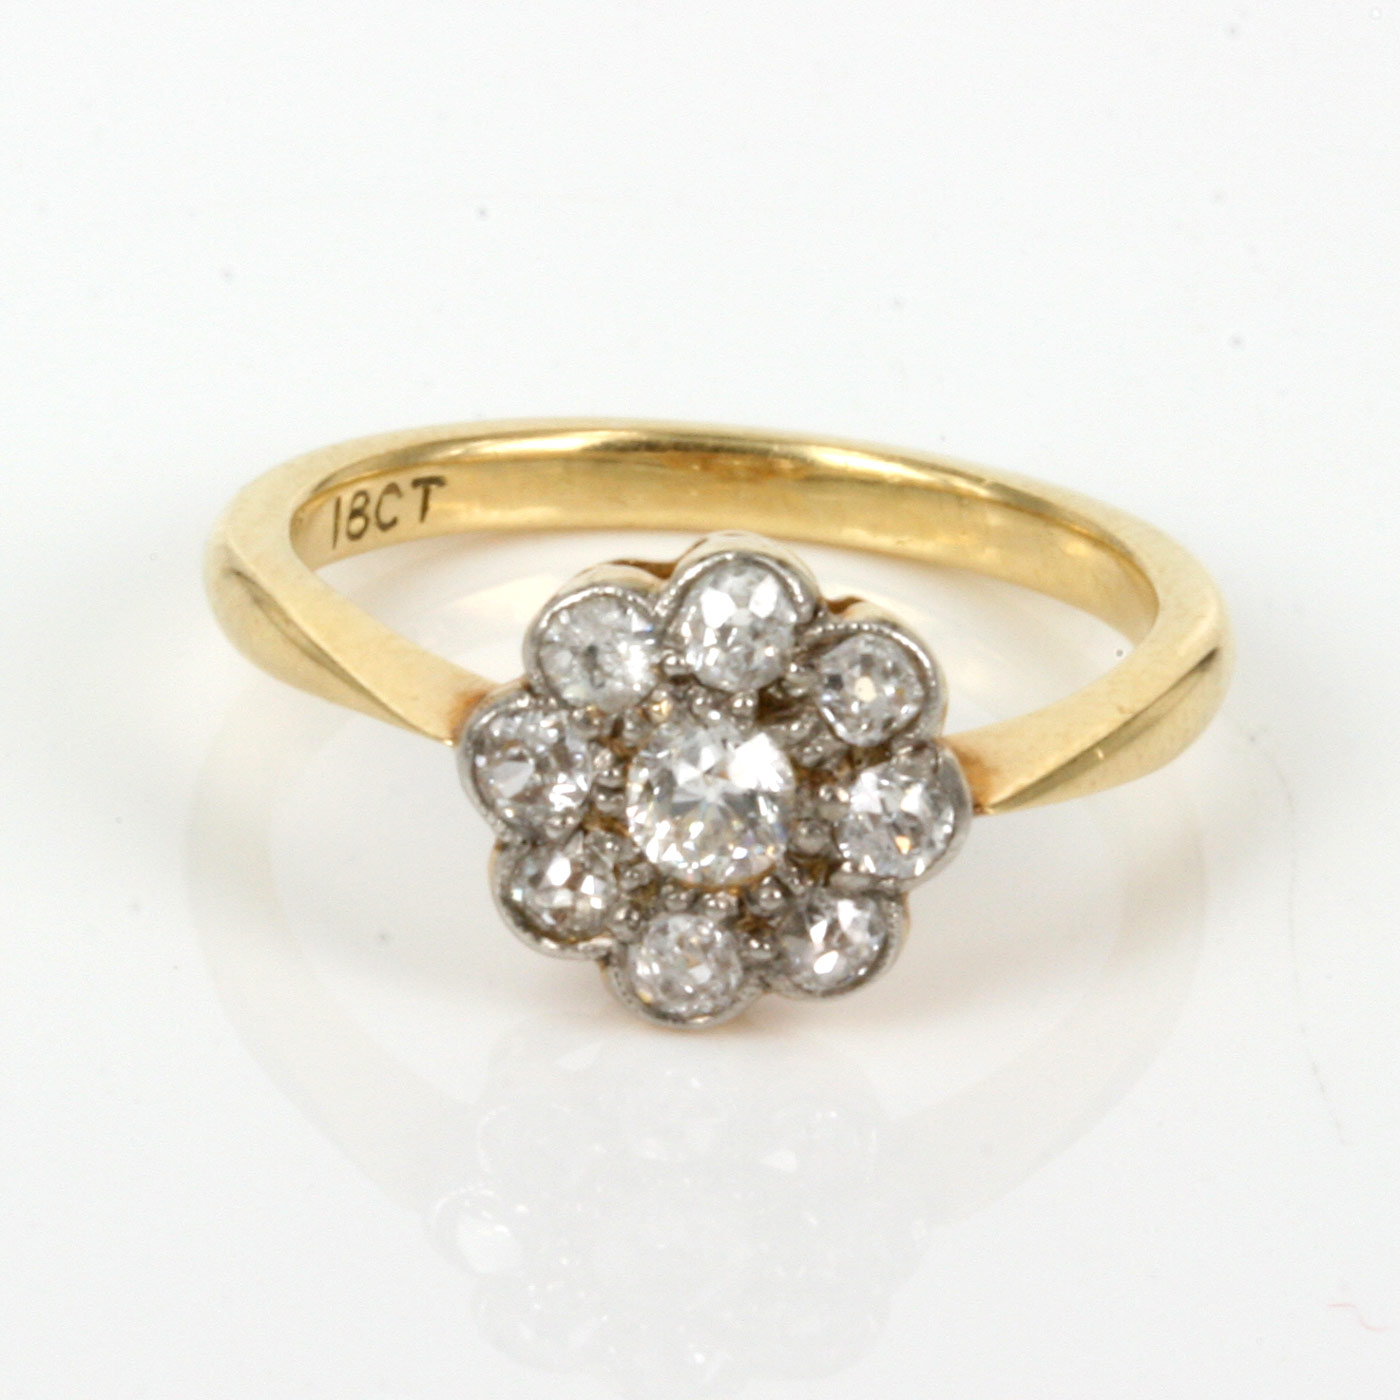 Antique Diamond Cluster Ring With 9 Diamonds